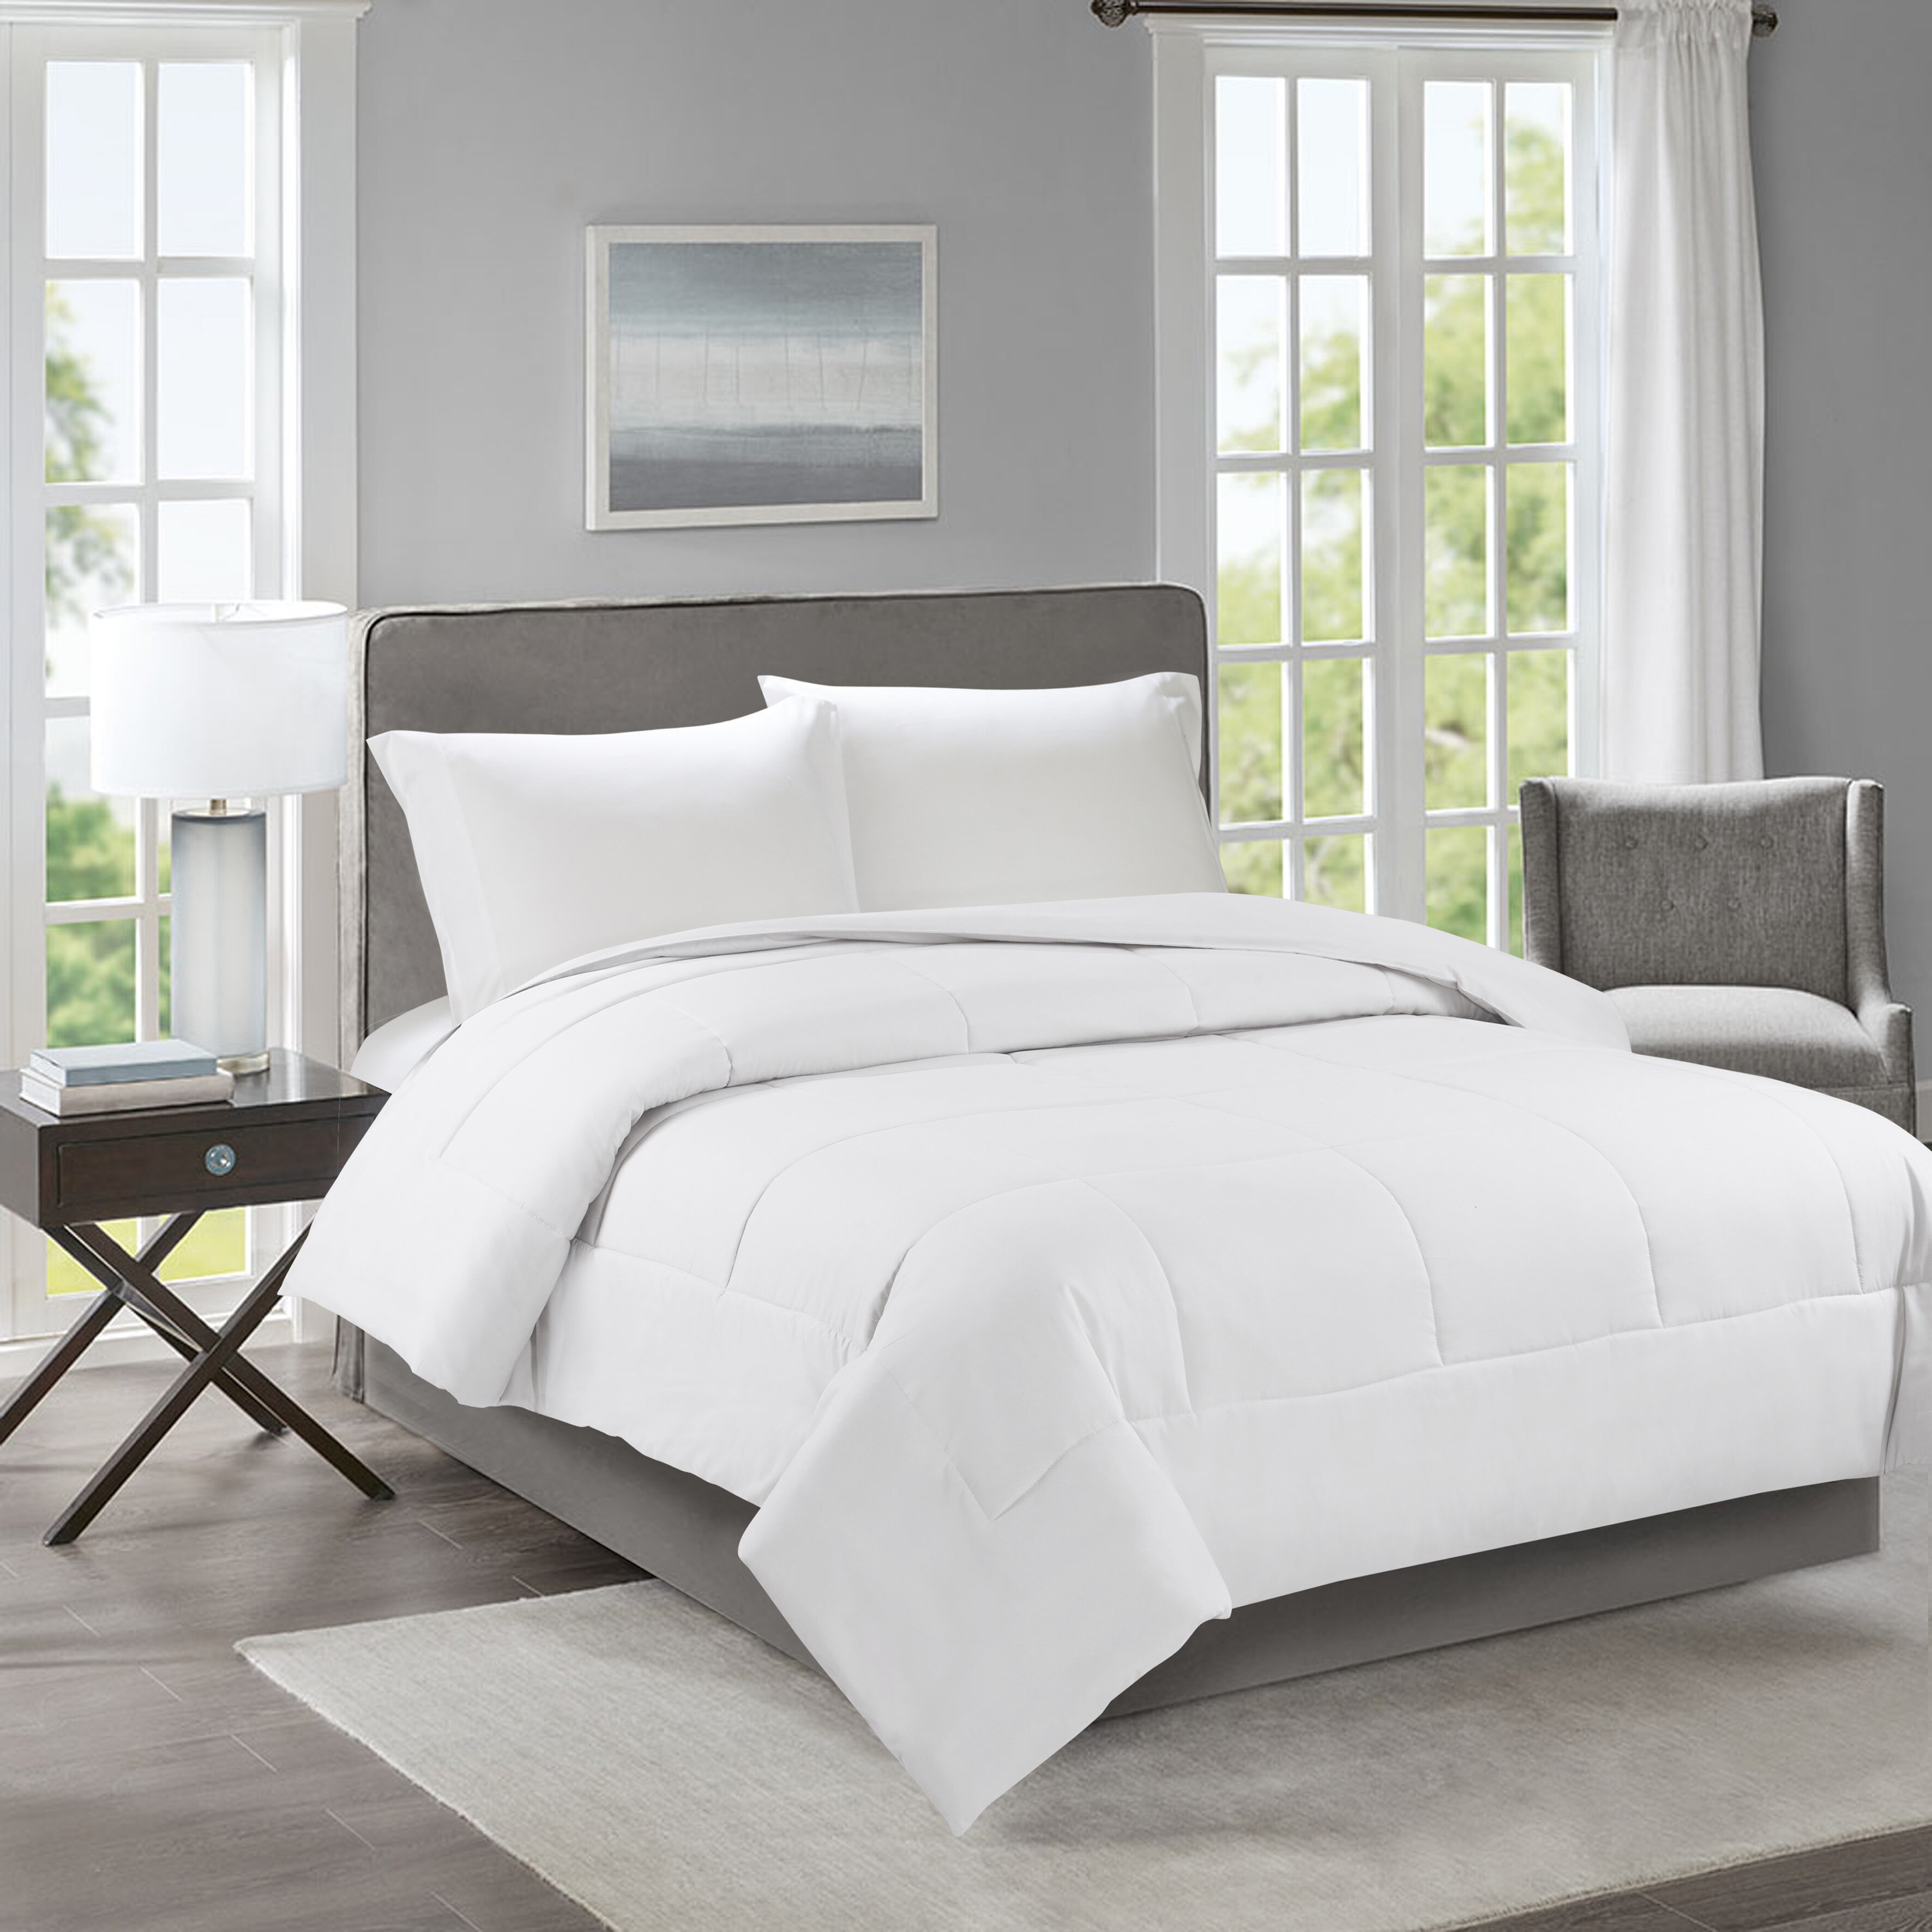 Deep Pocket Bed Coverlet 100/% Cotton Solid Color Fitted//Flat Sheet All Seasons